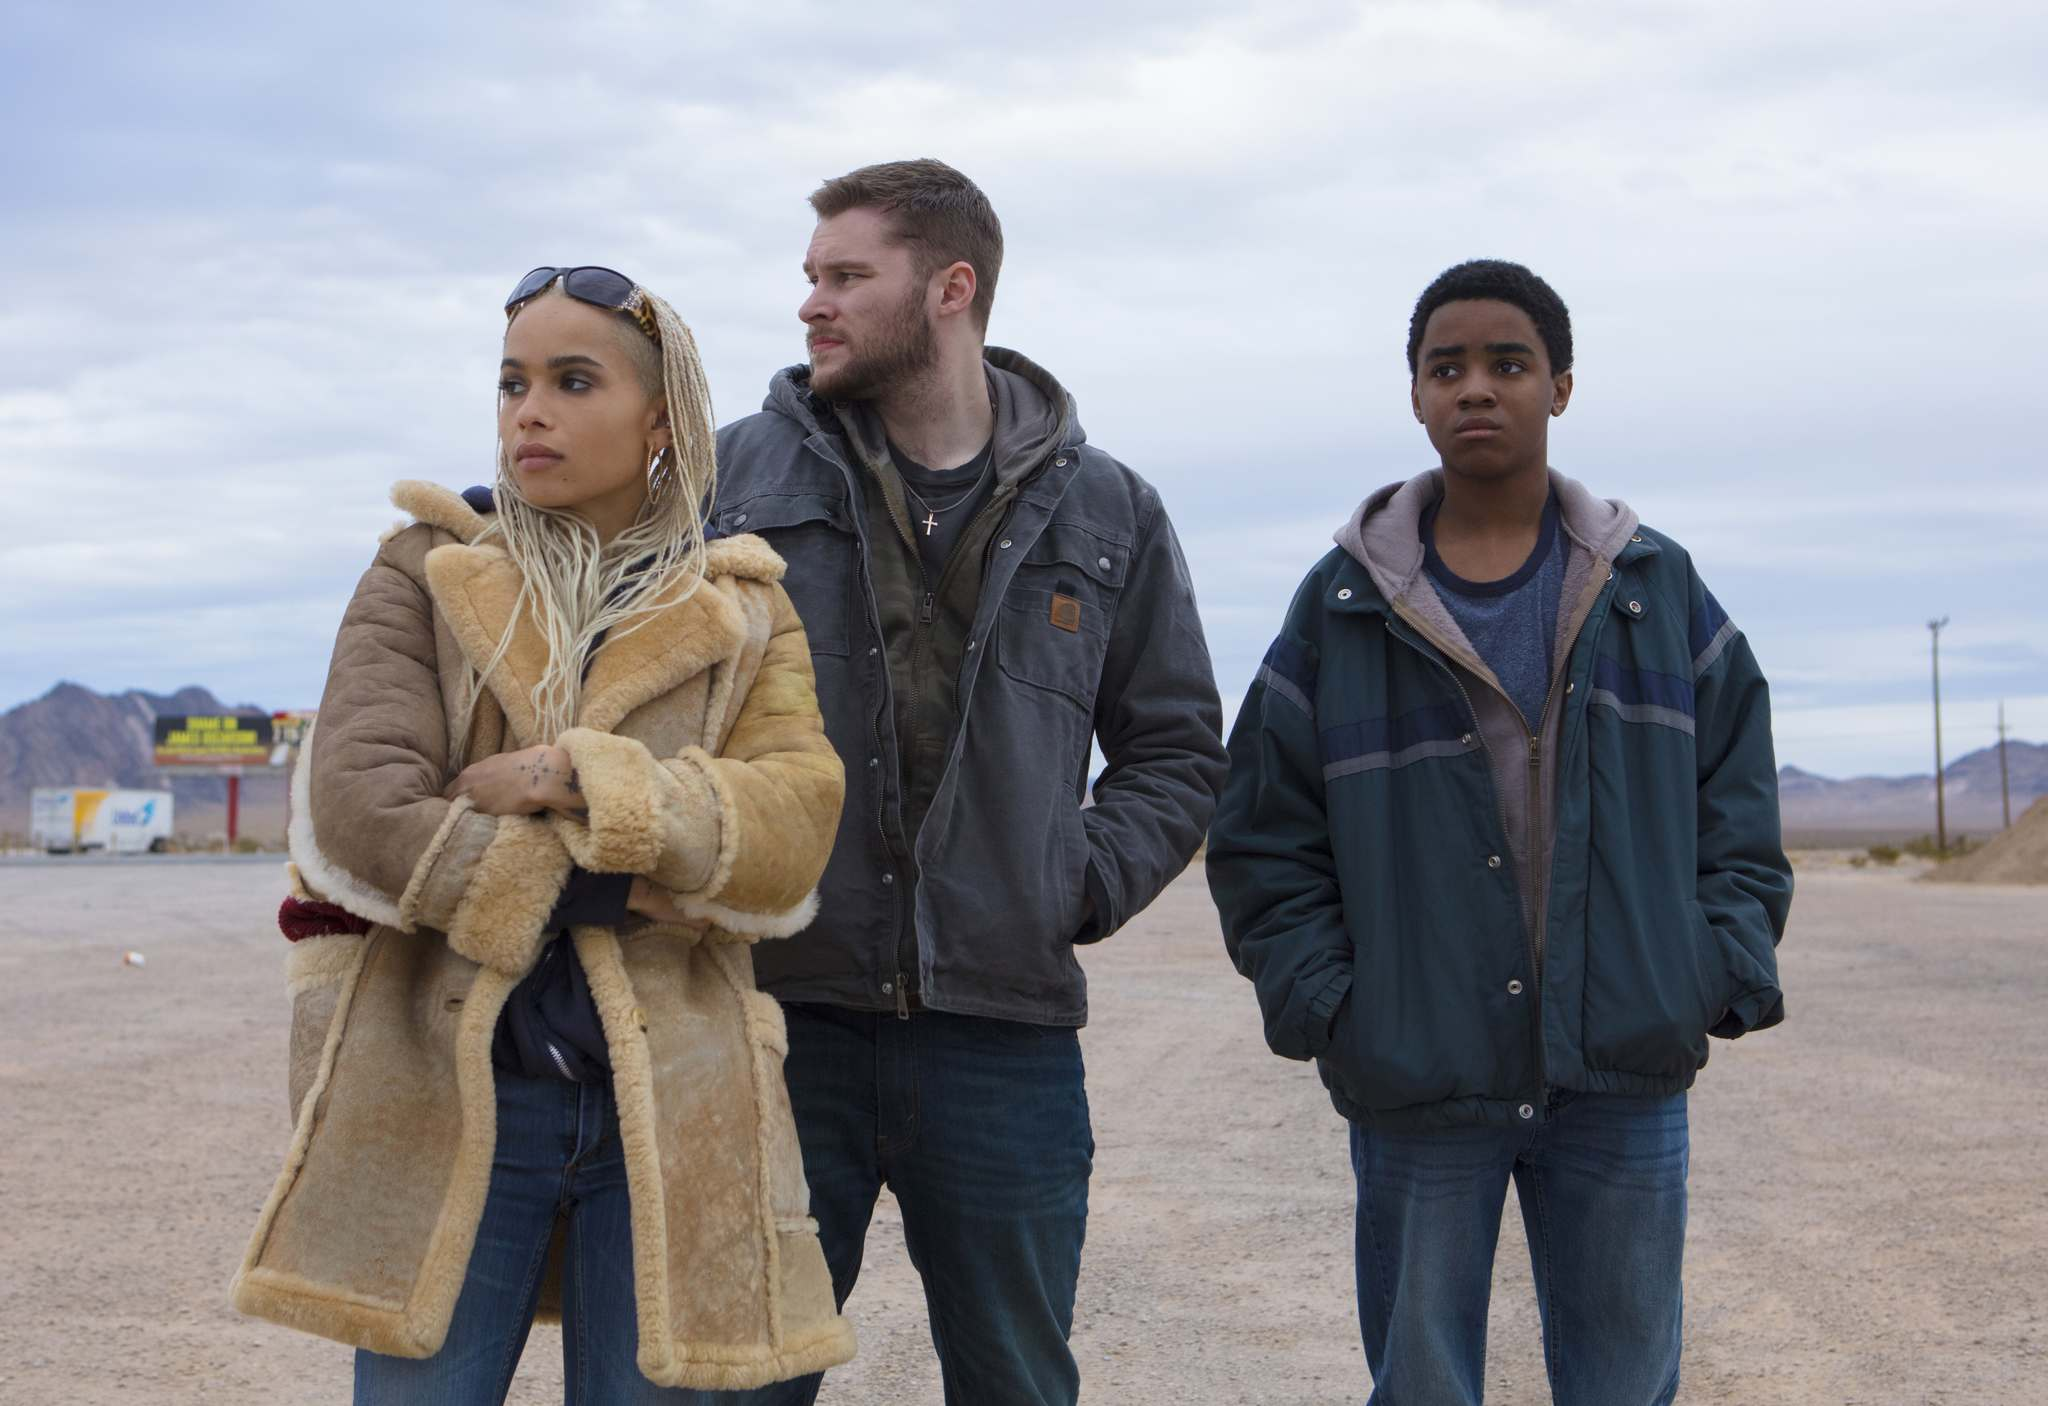 Alan Markfield / Lionsgate</p><p>Zoë Kravitz (from left), Jack Reynor and Myles Truitt star in Kin, which is based on a short film called Bag Man.</p></p>